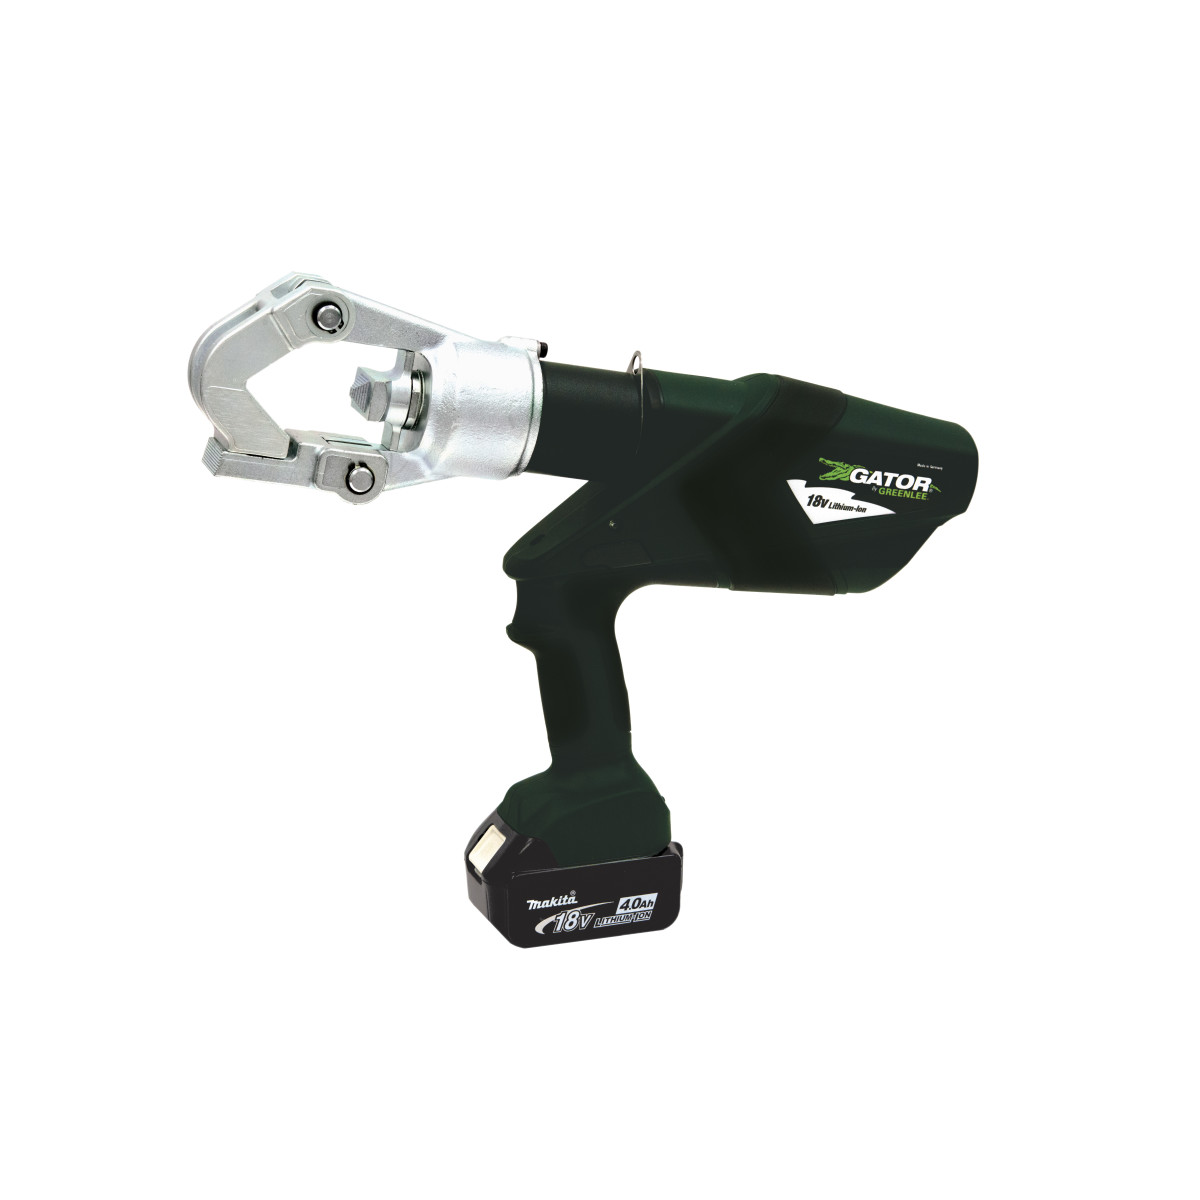 Greenlee EK12IDLX11 CRIMPER INDENT, 12T LI, STD, 120V